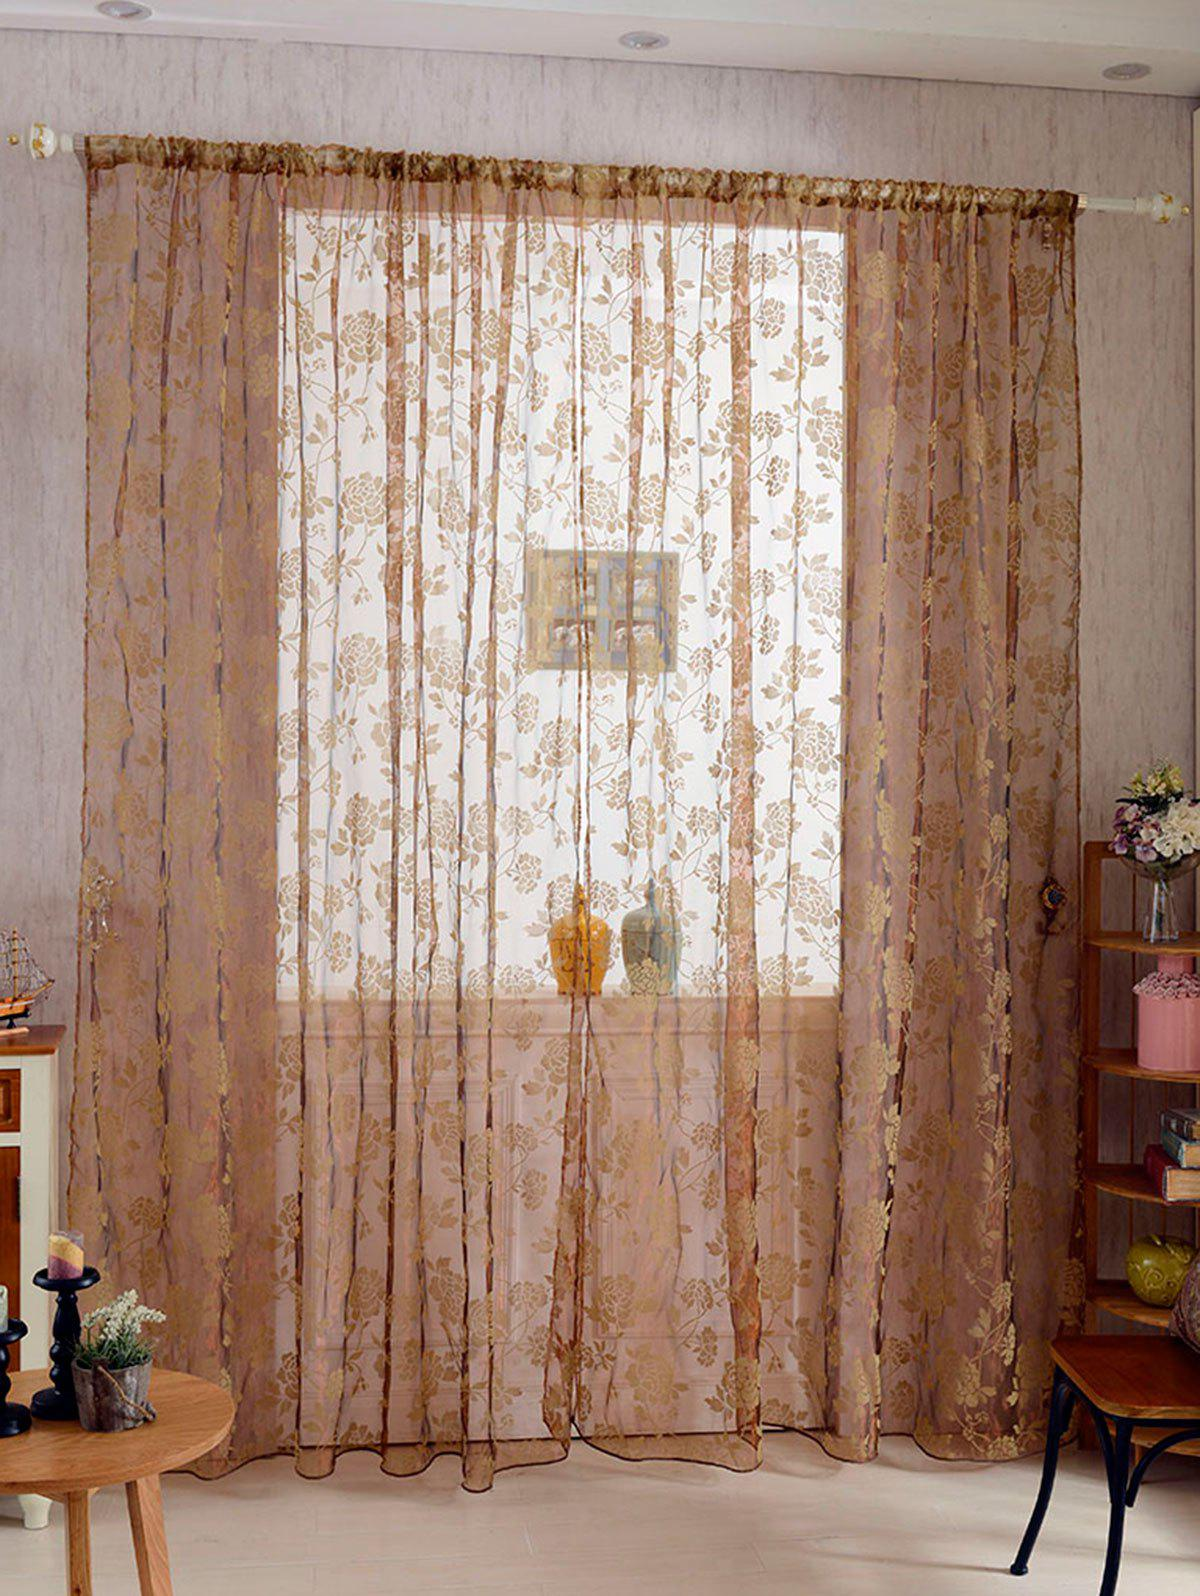 2 Panels Rose Embroidery Window Sheer Tulle Fabric Curtain roman rose embroidery sheer screening tull curtain